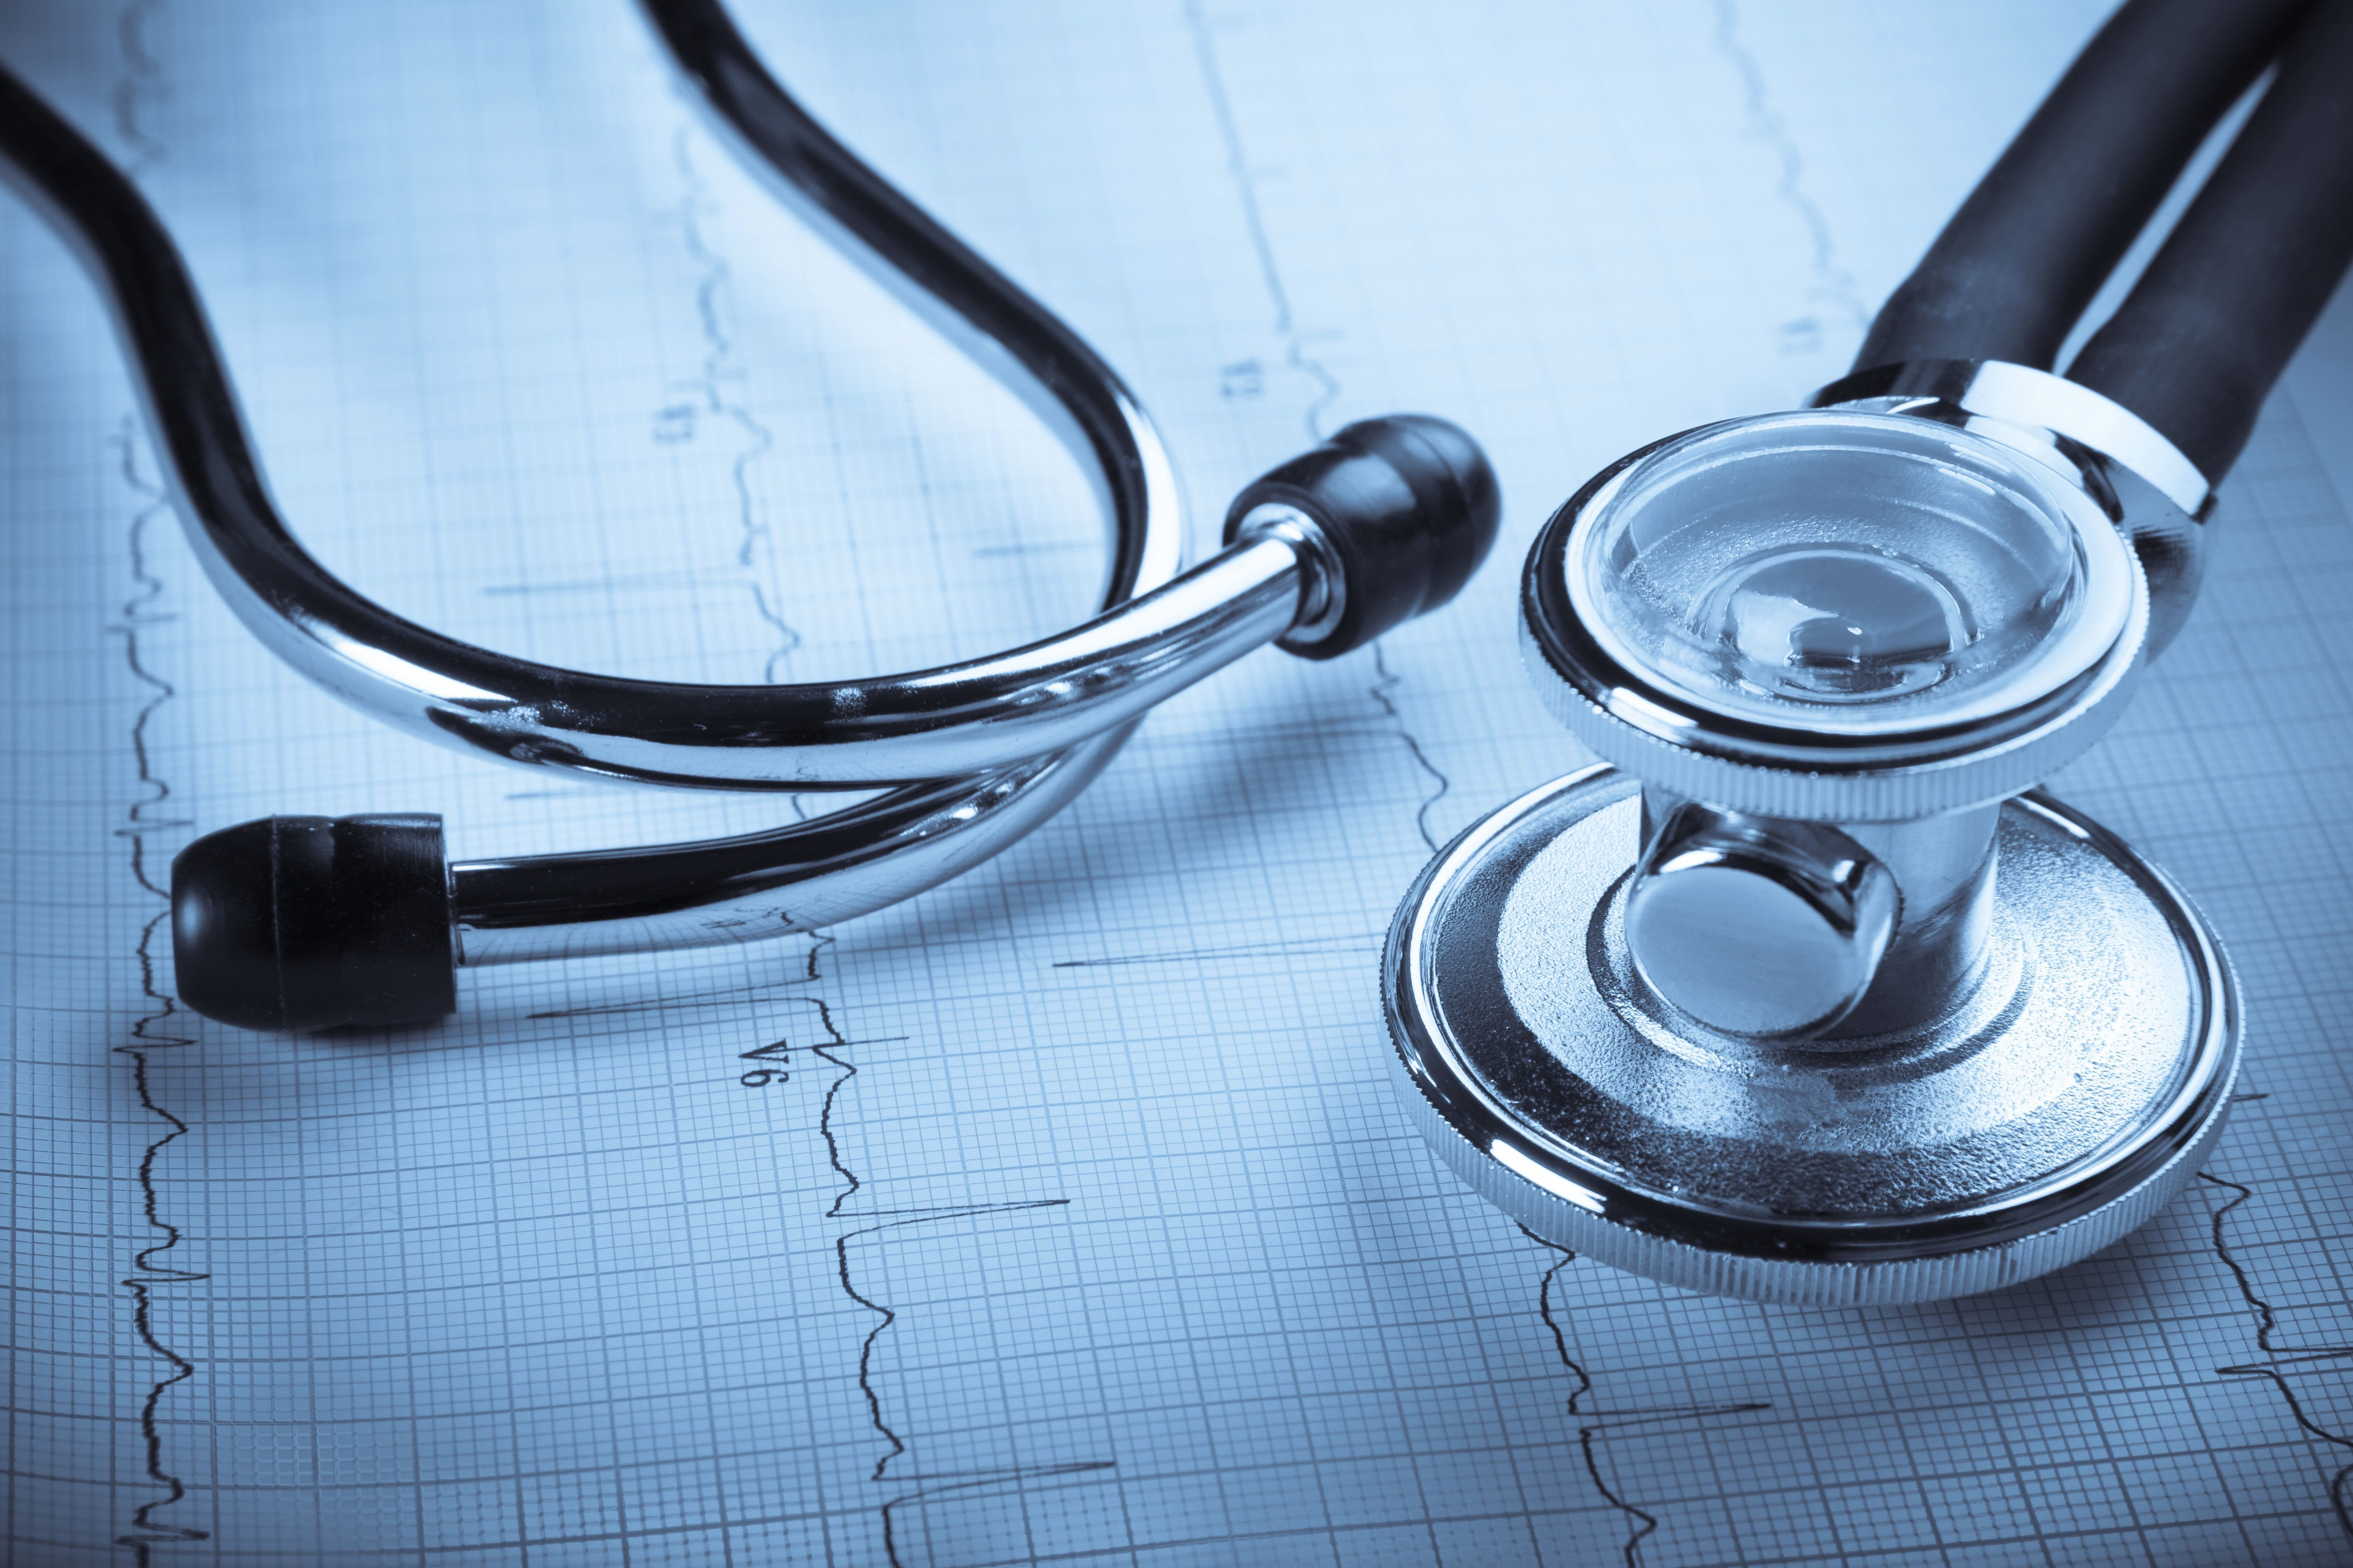 Medical Equipment HD Wallpapers - Top Free Medical ...Doctor Stethoscope Images Hd